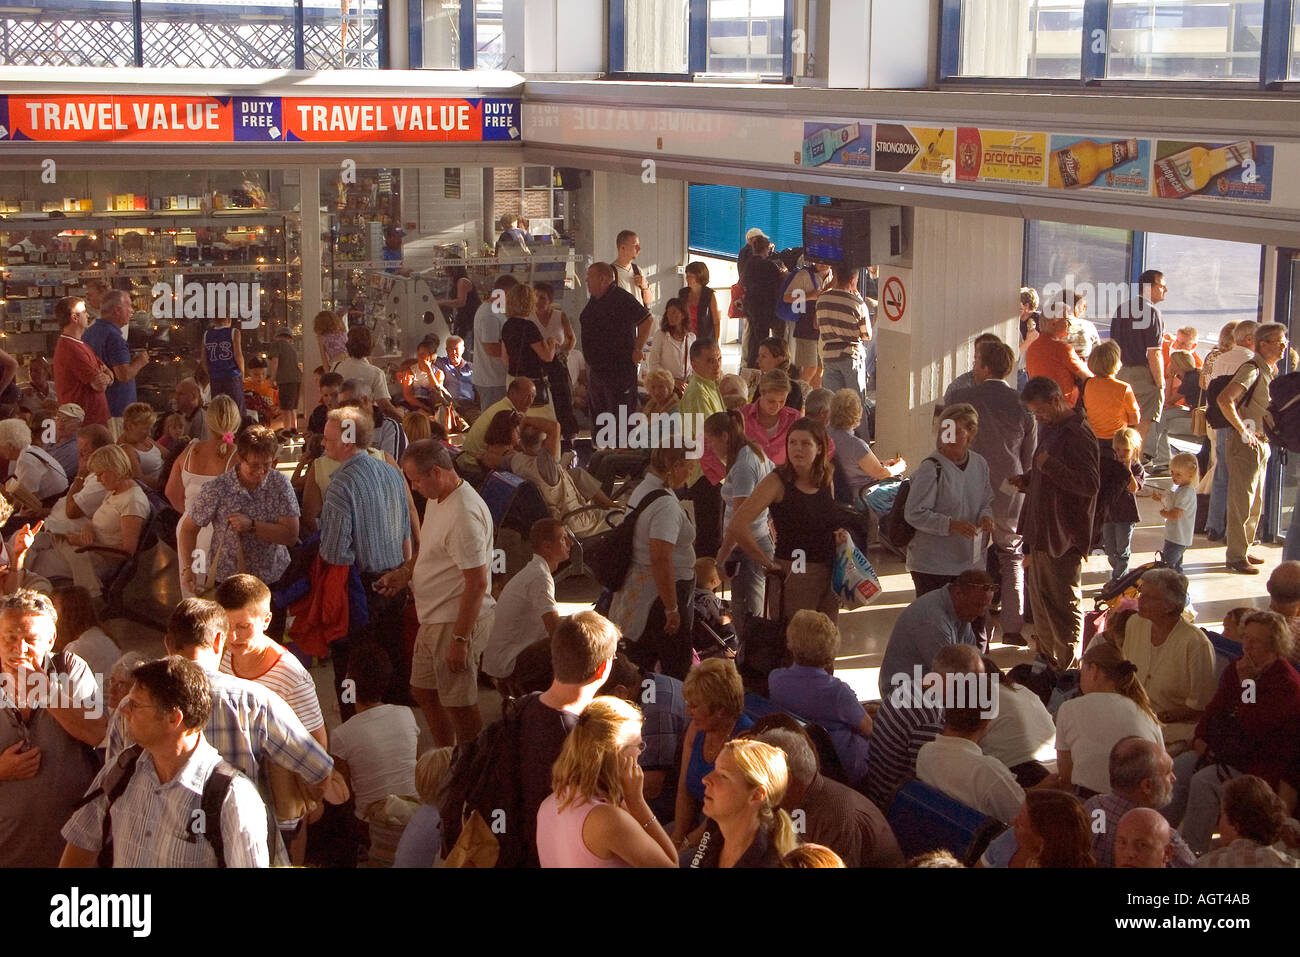 dh Kos Airport KOS AIRPORT GREECE KOS Tourist in departure lounge crowds due to air traffic controller strike delays - Stock Image